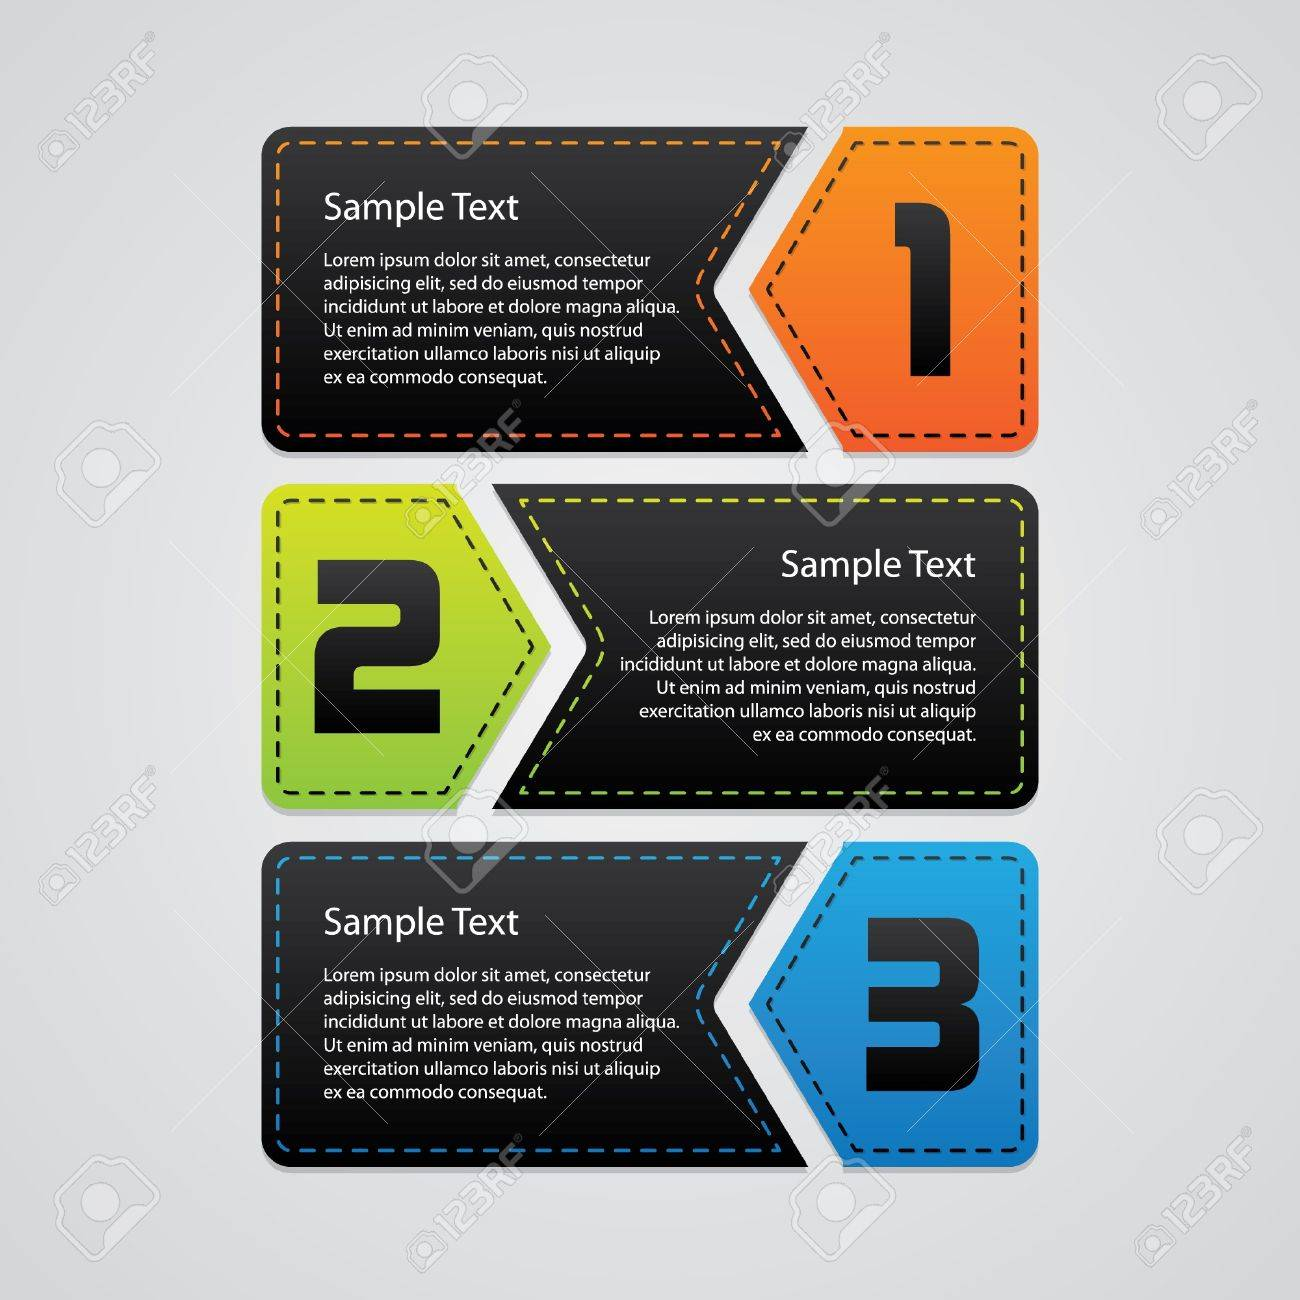 Progress Template Stock Vector - 18729853